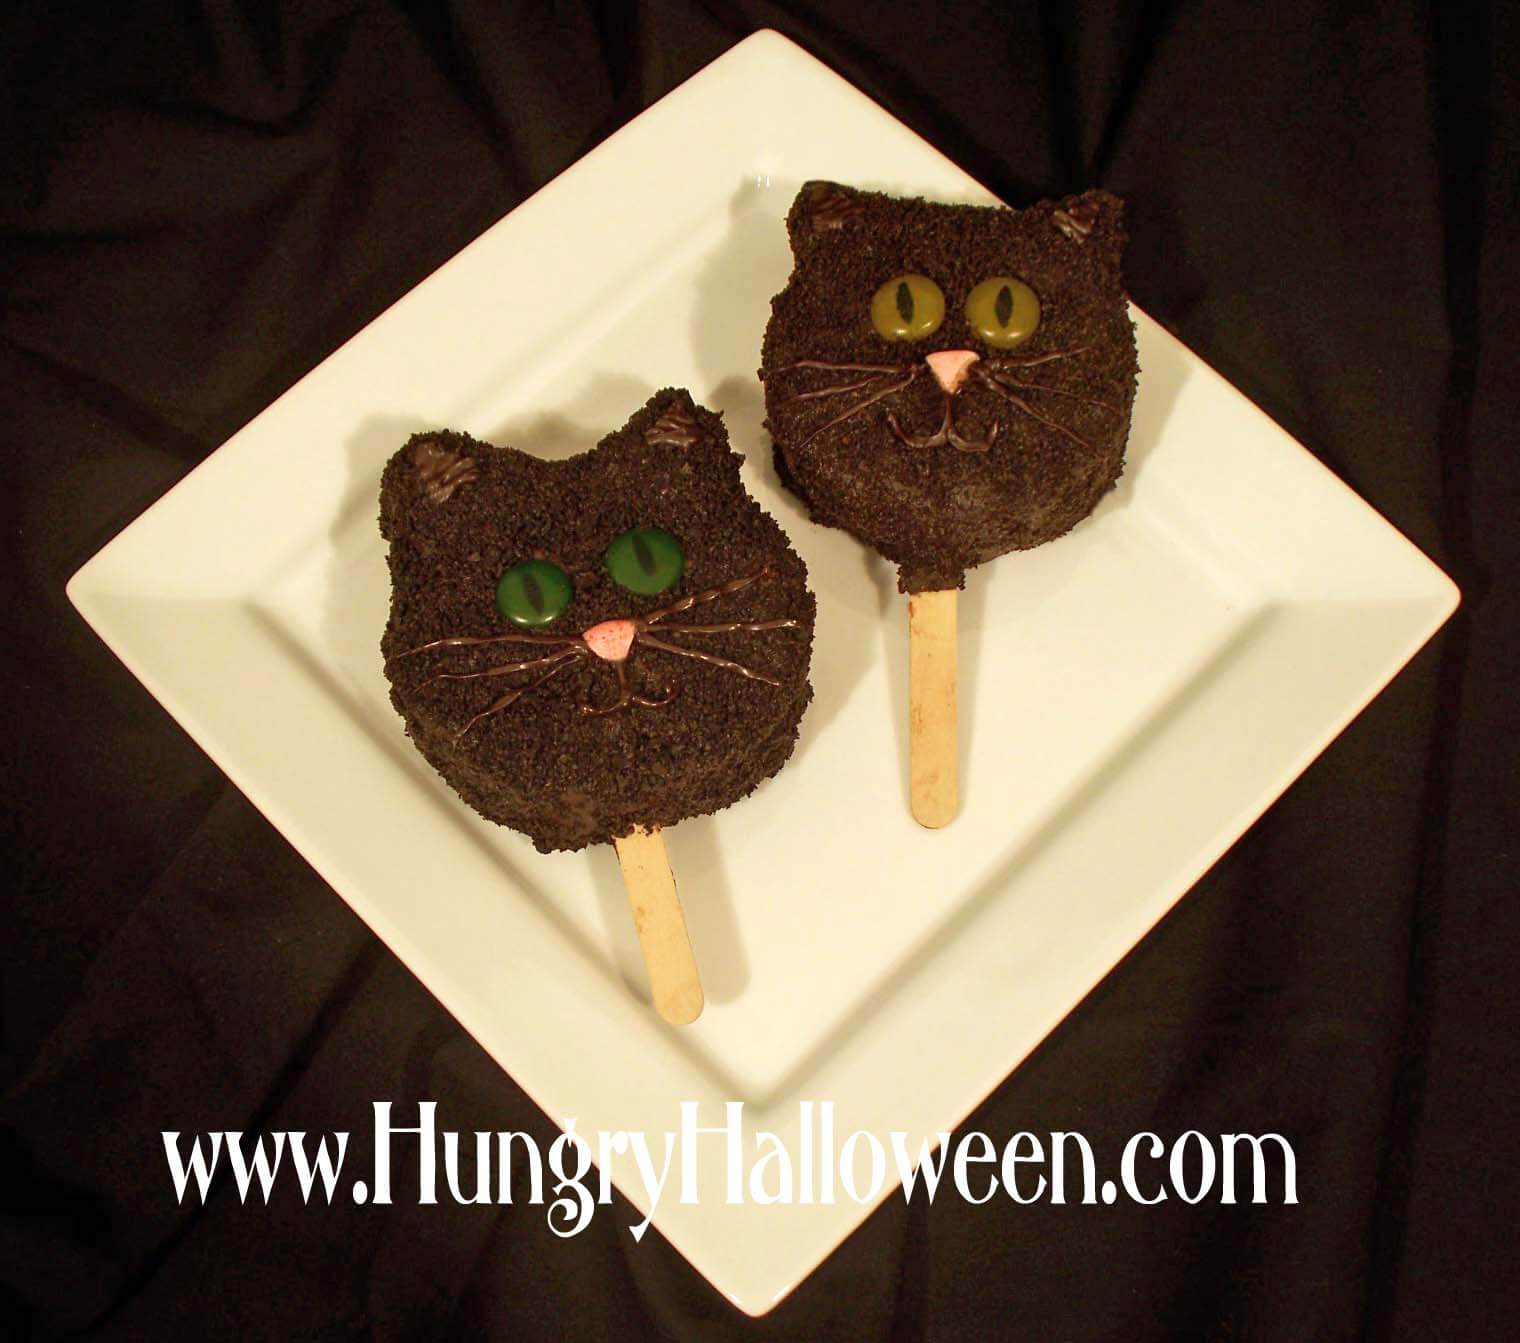 Black cat chocolate pop dessert-halloween-food-ideas